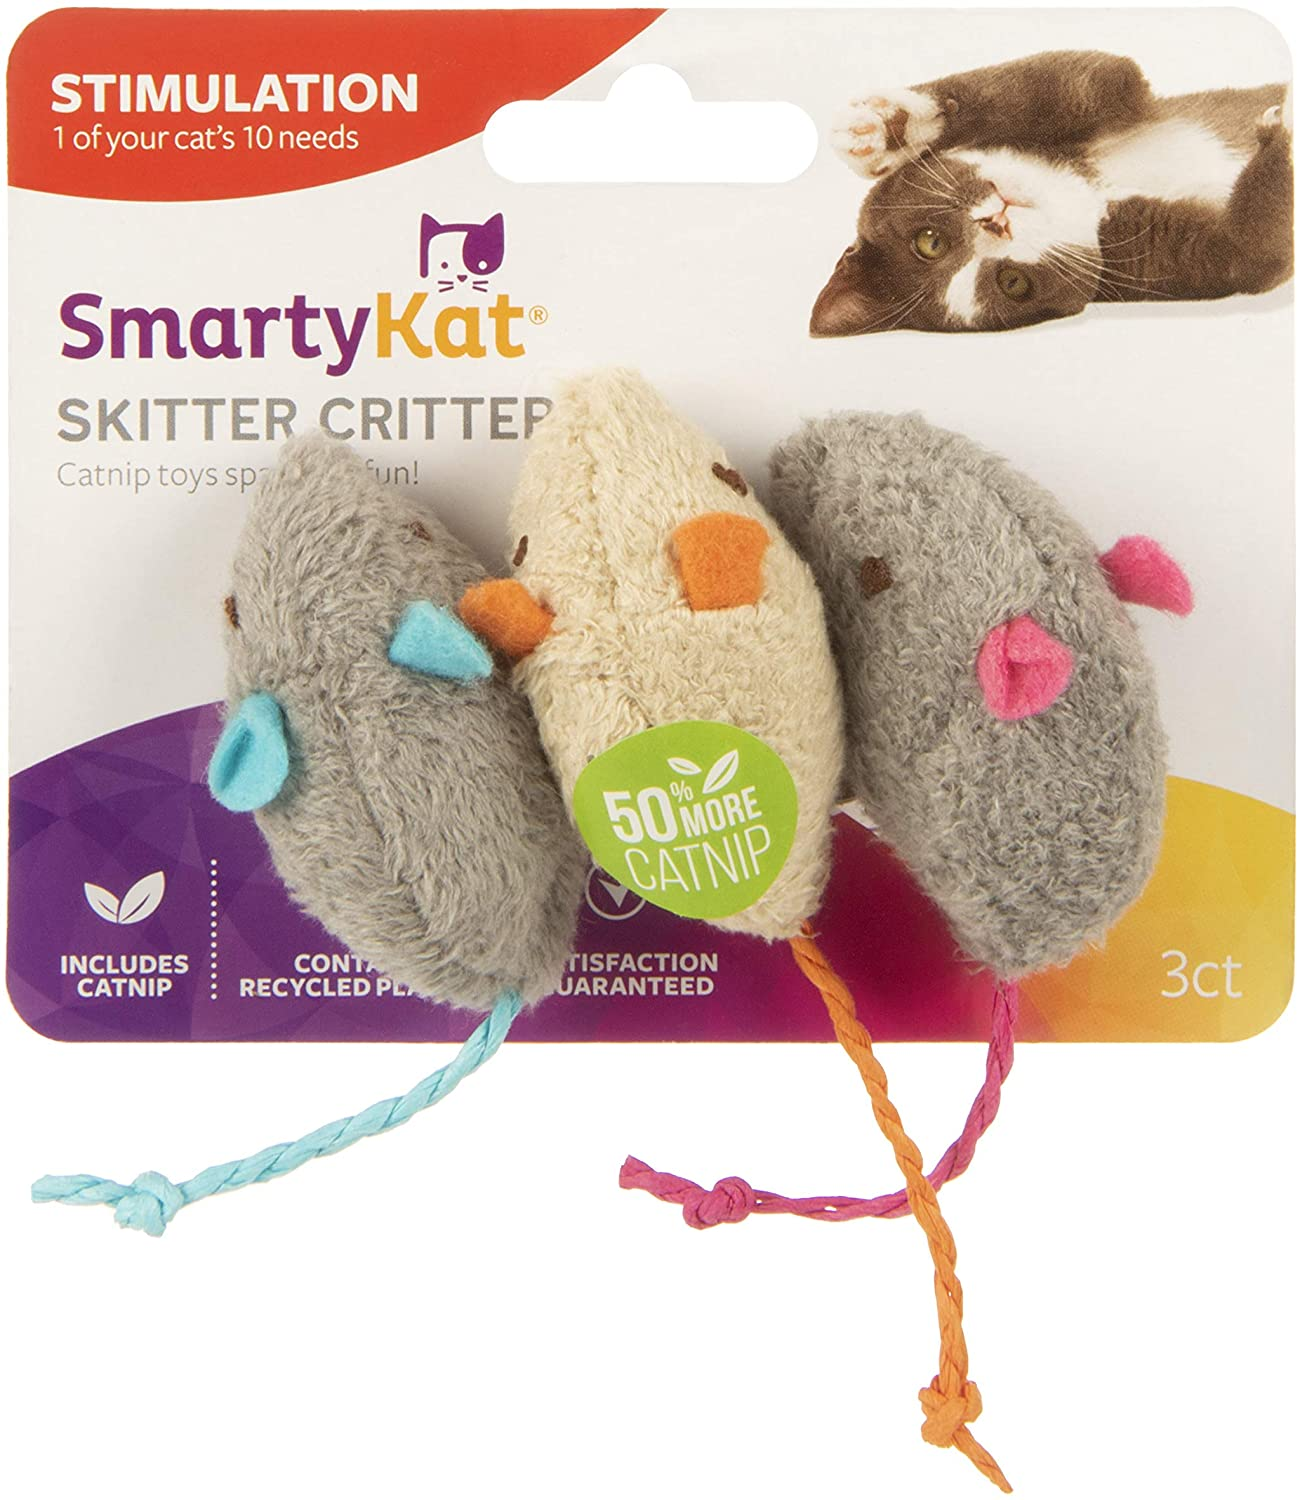 SmartyKat Skitter Critters Cat Toy Catnip Mice, 3/pkg : Pet Mice And Animal Toys : Pet Supplies